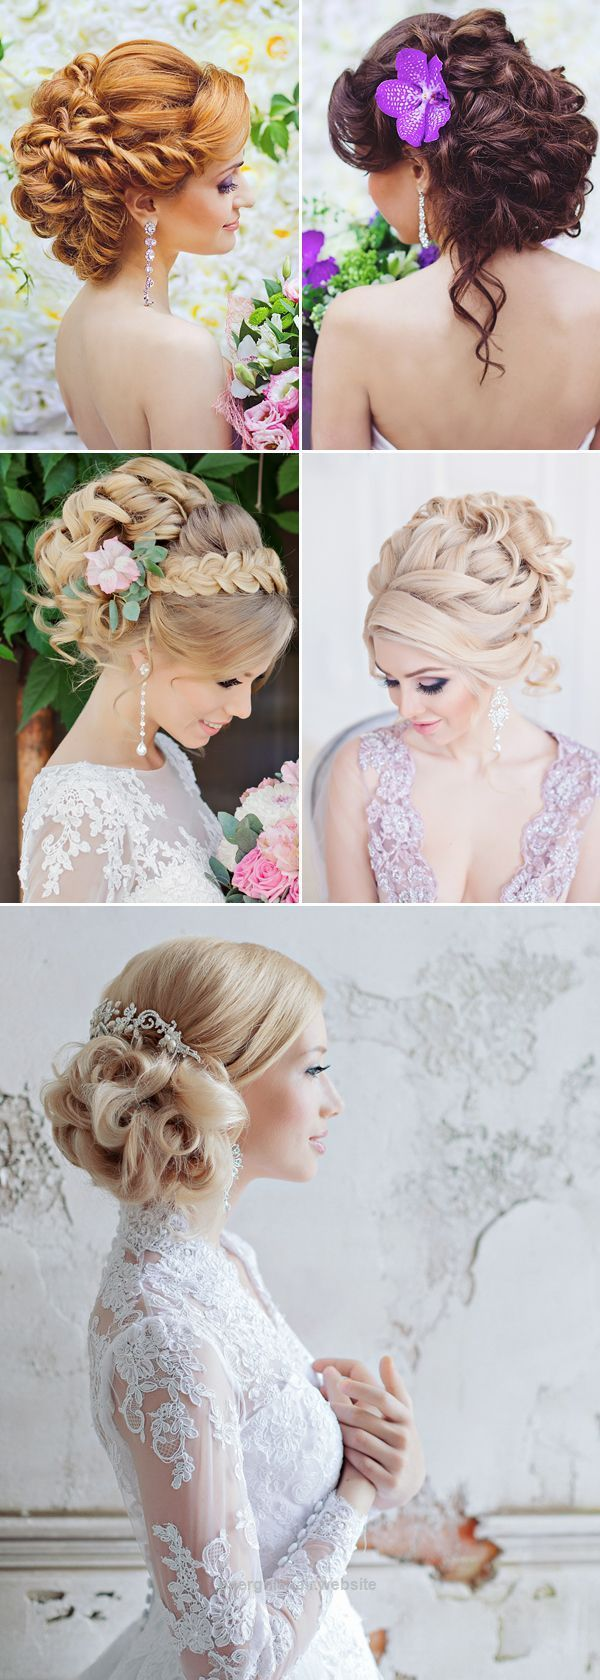 43 best Hairstyles images on Pinterest | Bridal hairstyles, Wedding ...